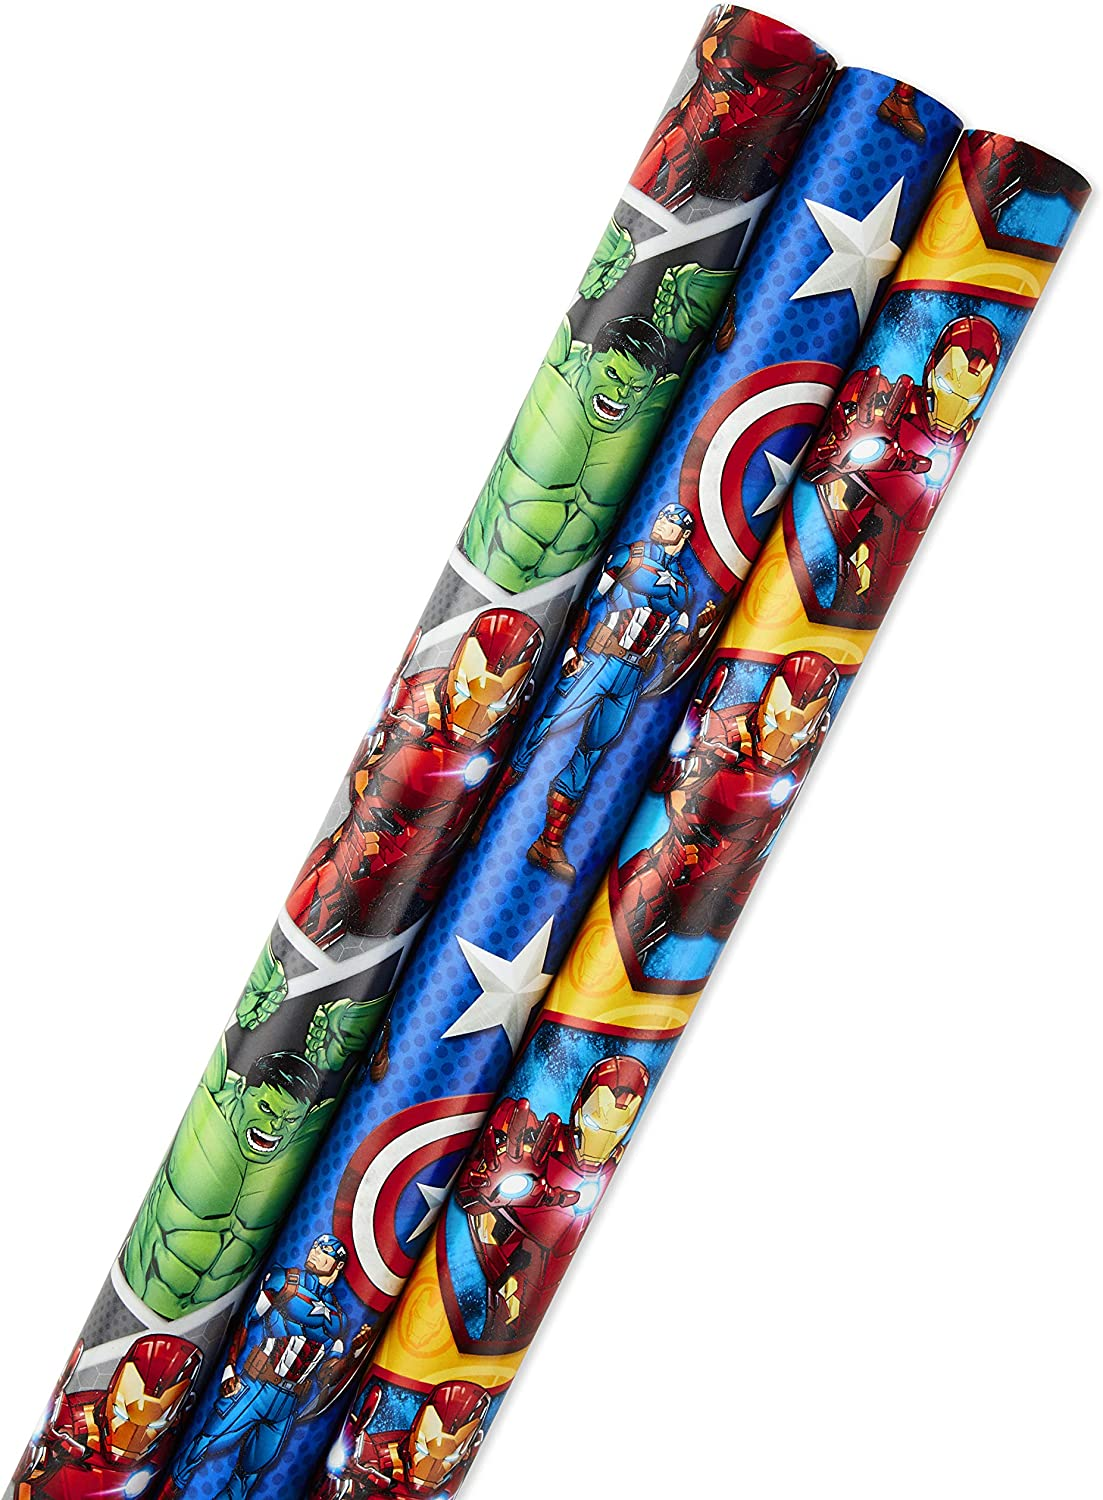 Hallmark Avengers Wrapping Paper Bundle with Cut Lines on Reverse, Black Widow, Captain America, Iron Man, Thor (Pack of 3, 105 sq. ft. ttl.) for Birthdays, Holidays, Fathers Day and More: Kitchen & Dining